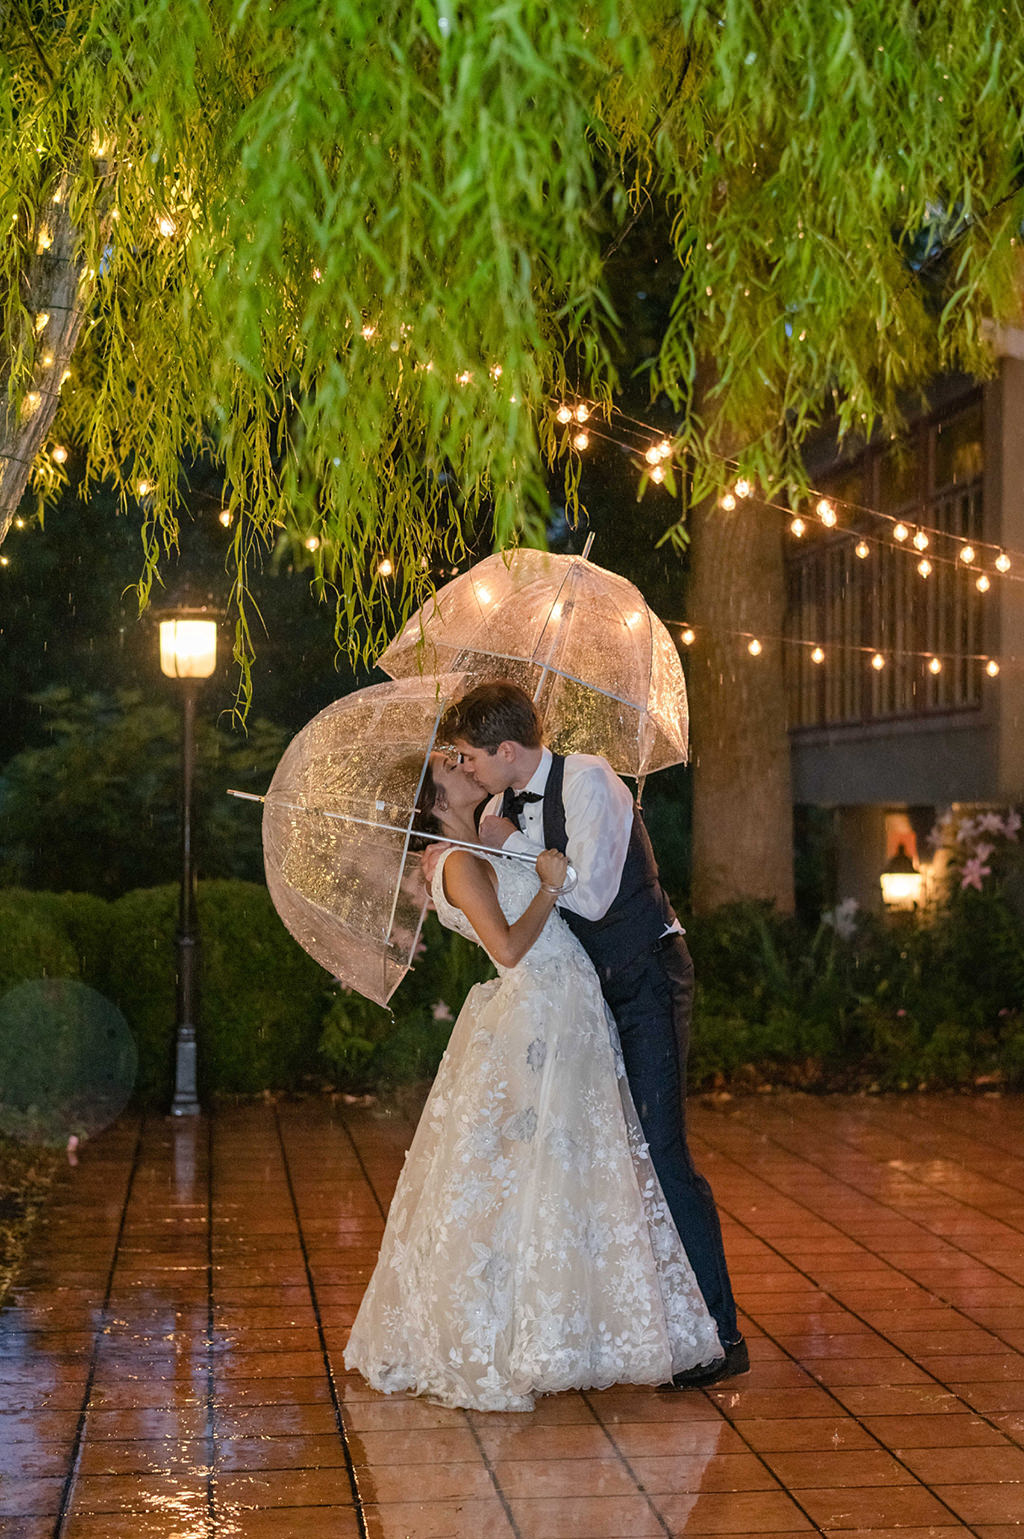 A bride and groom kissing under umbrellas in the rain. This was taken at their wedding at Moonstone Manor.